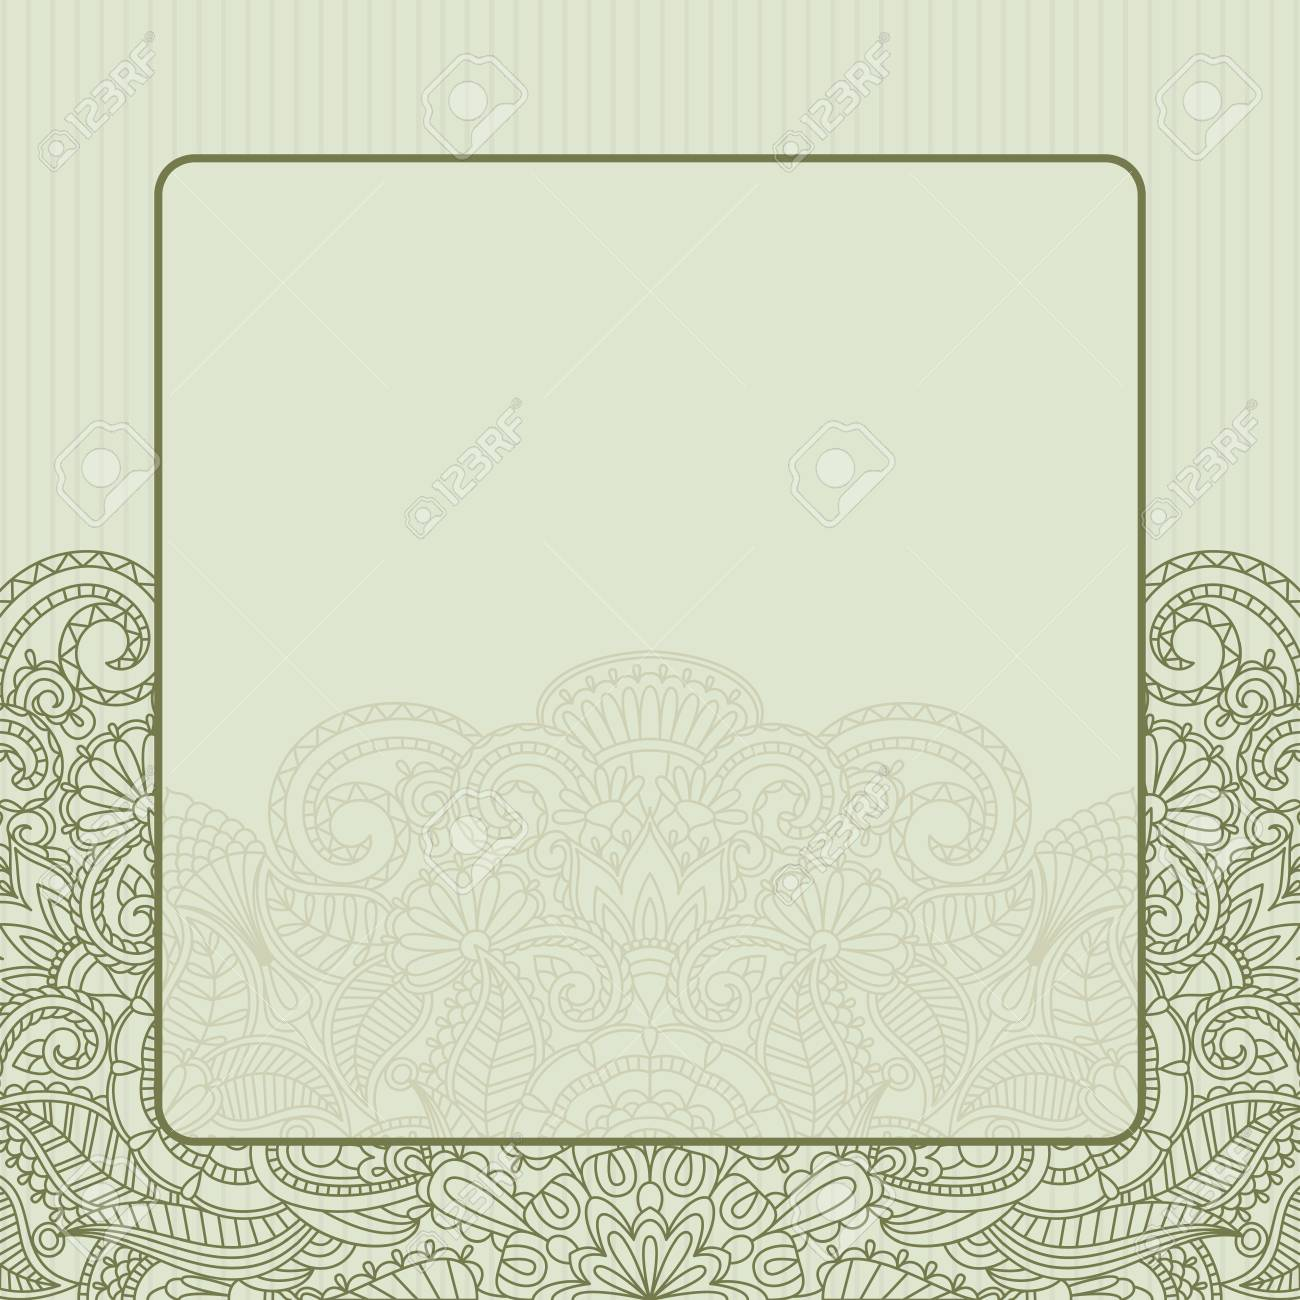 illustration greeting card with floral pattern. Stock Vector - 15425598